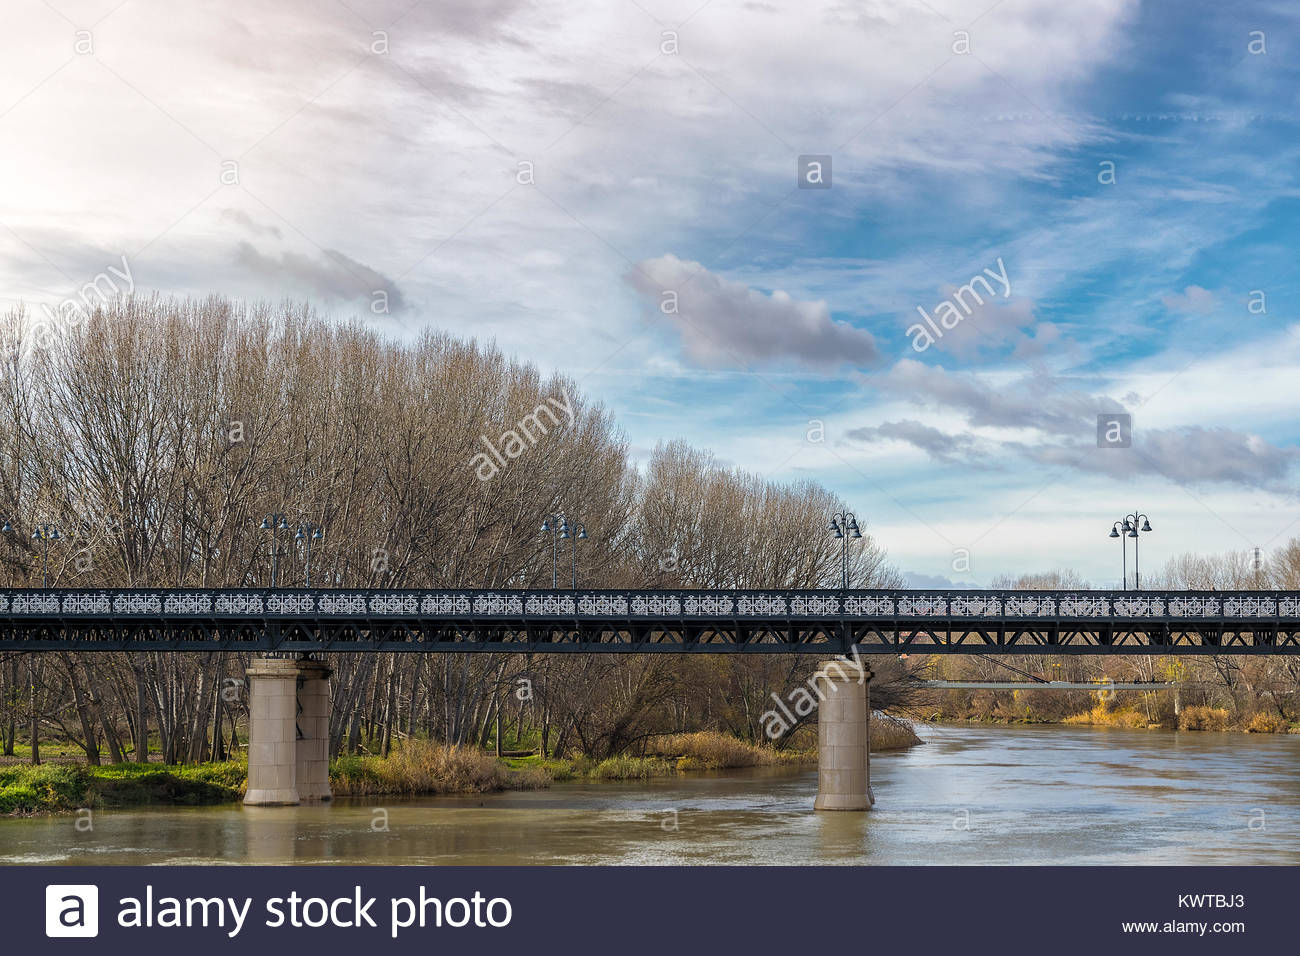 detail of iron bridge over the river and nice blue sky with white clouds and trees in winter - Stock Image